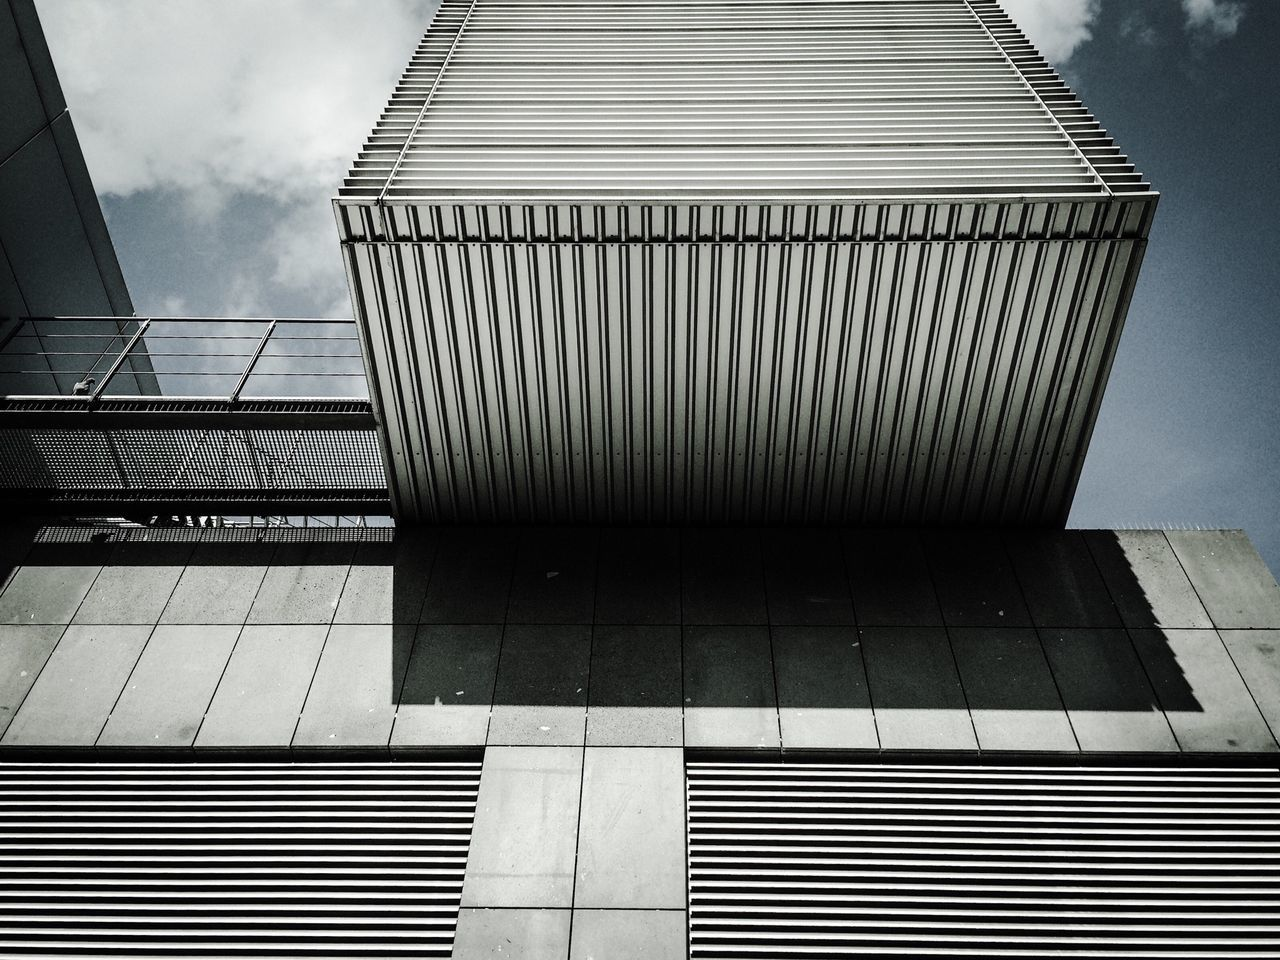 Exterior of Modern Building Against Sky